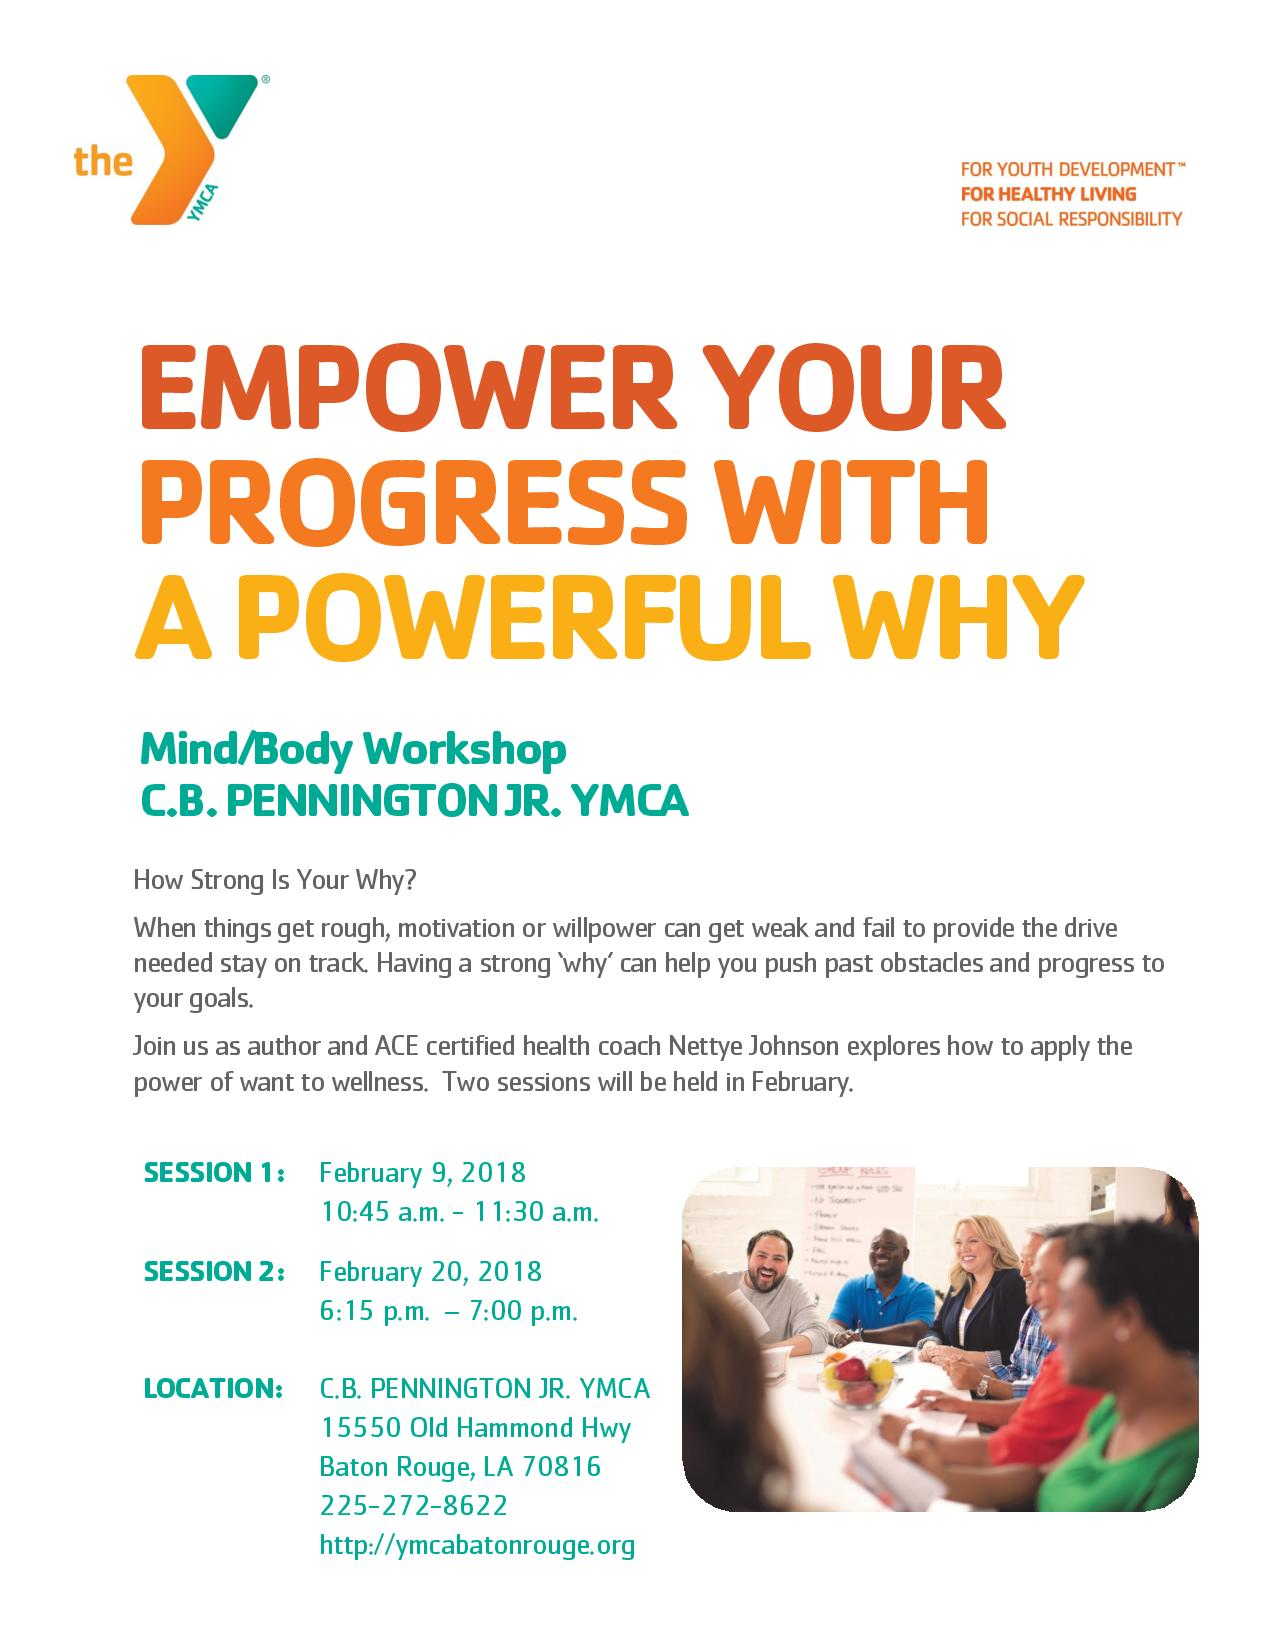 YMCA Mind Body Workshop